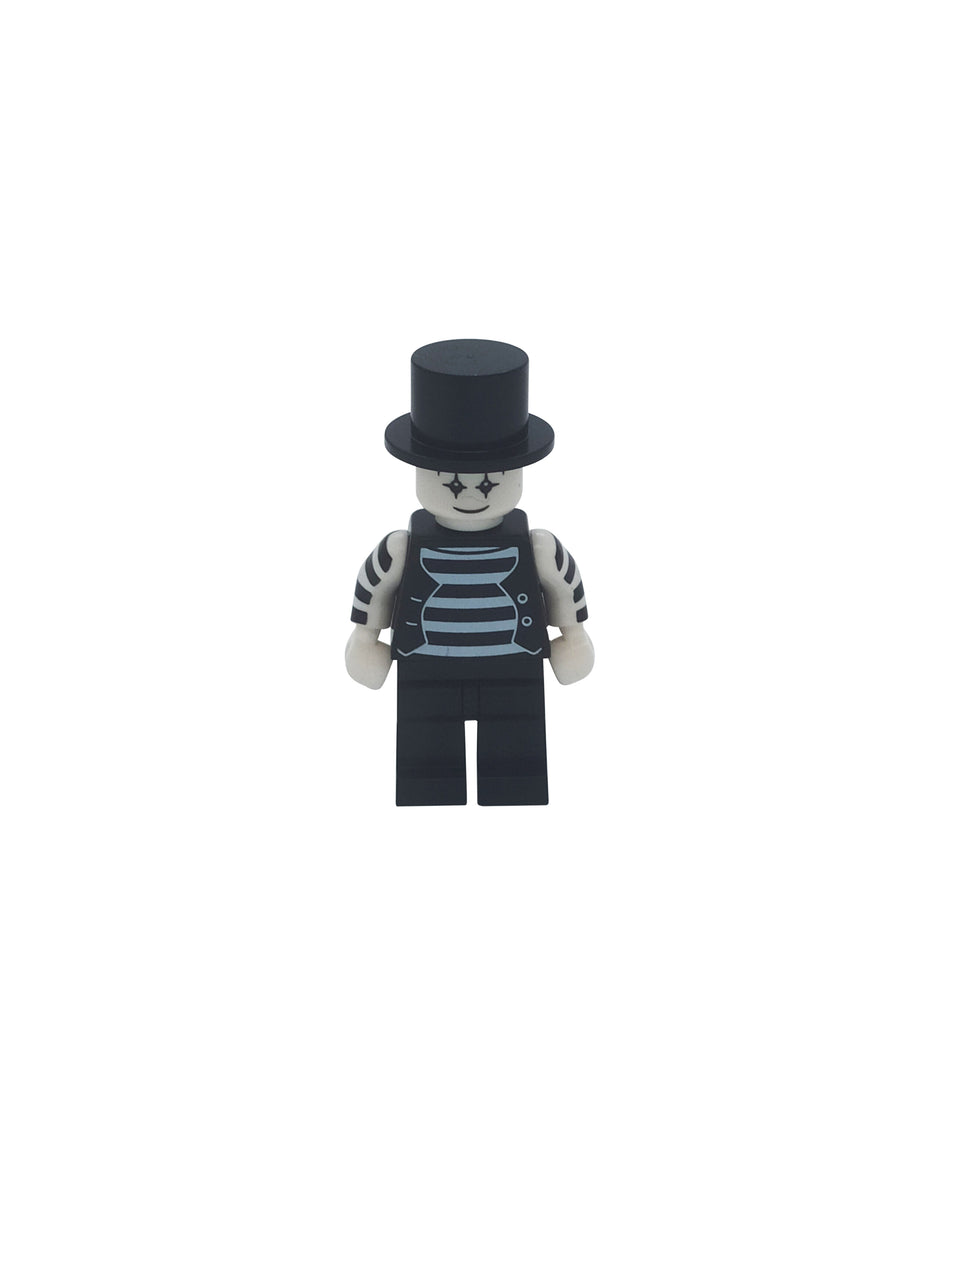 Character in a black and white suit with a tall black hat - Lego